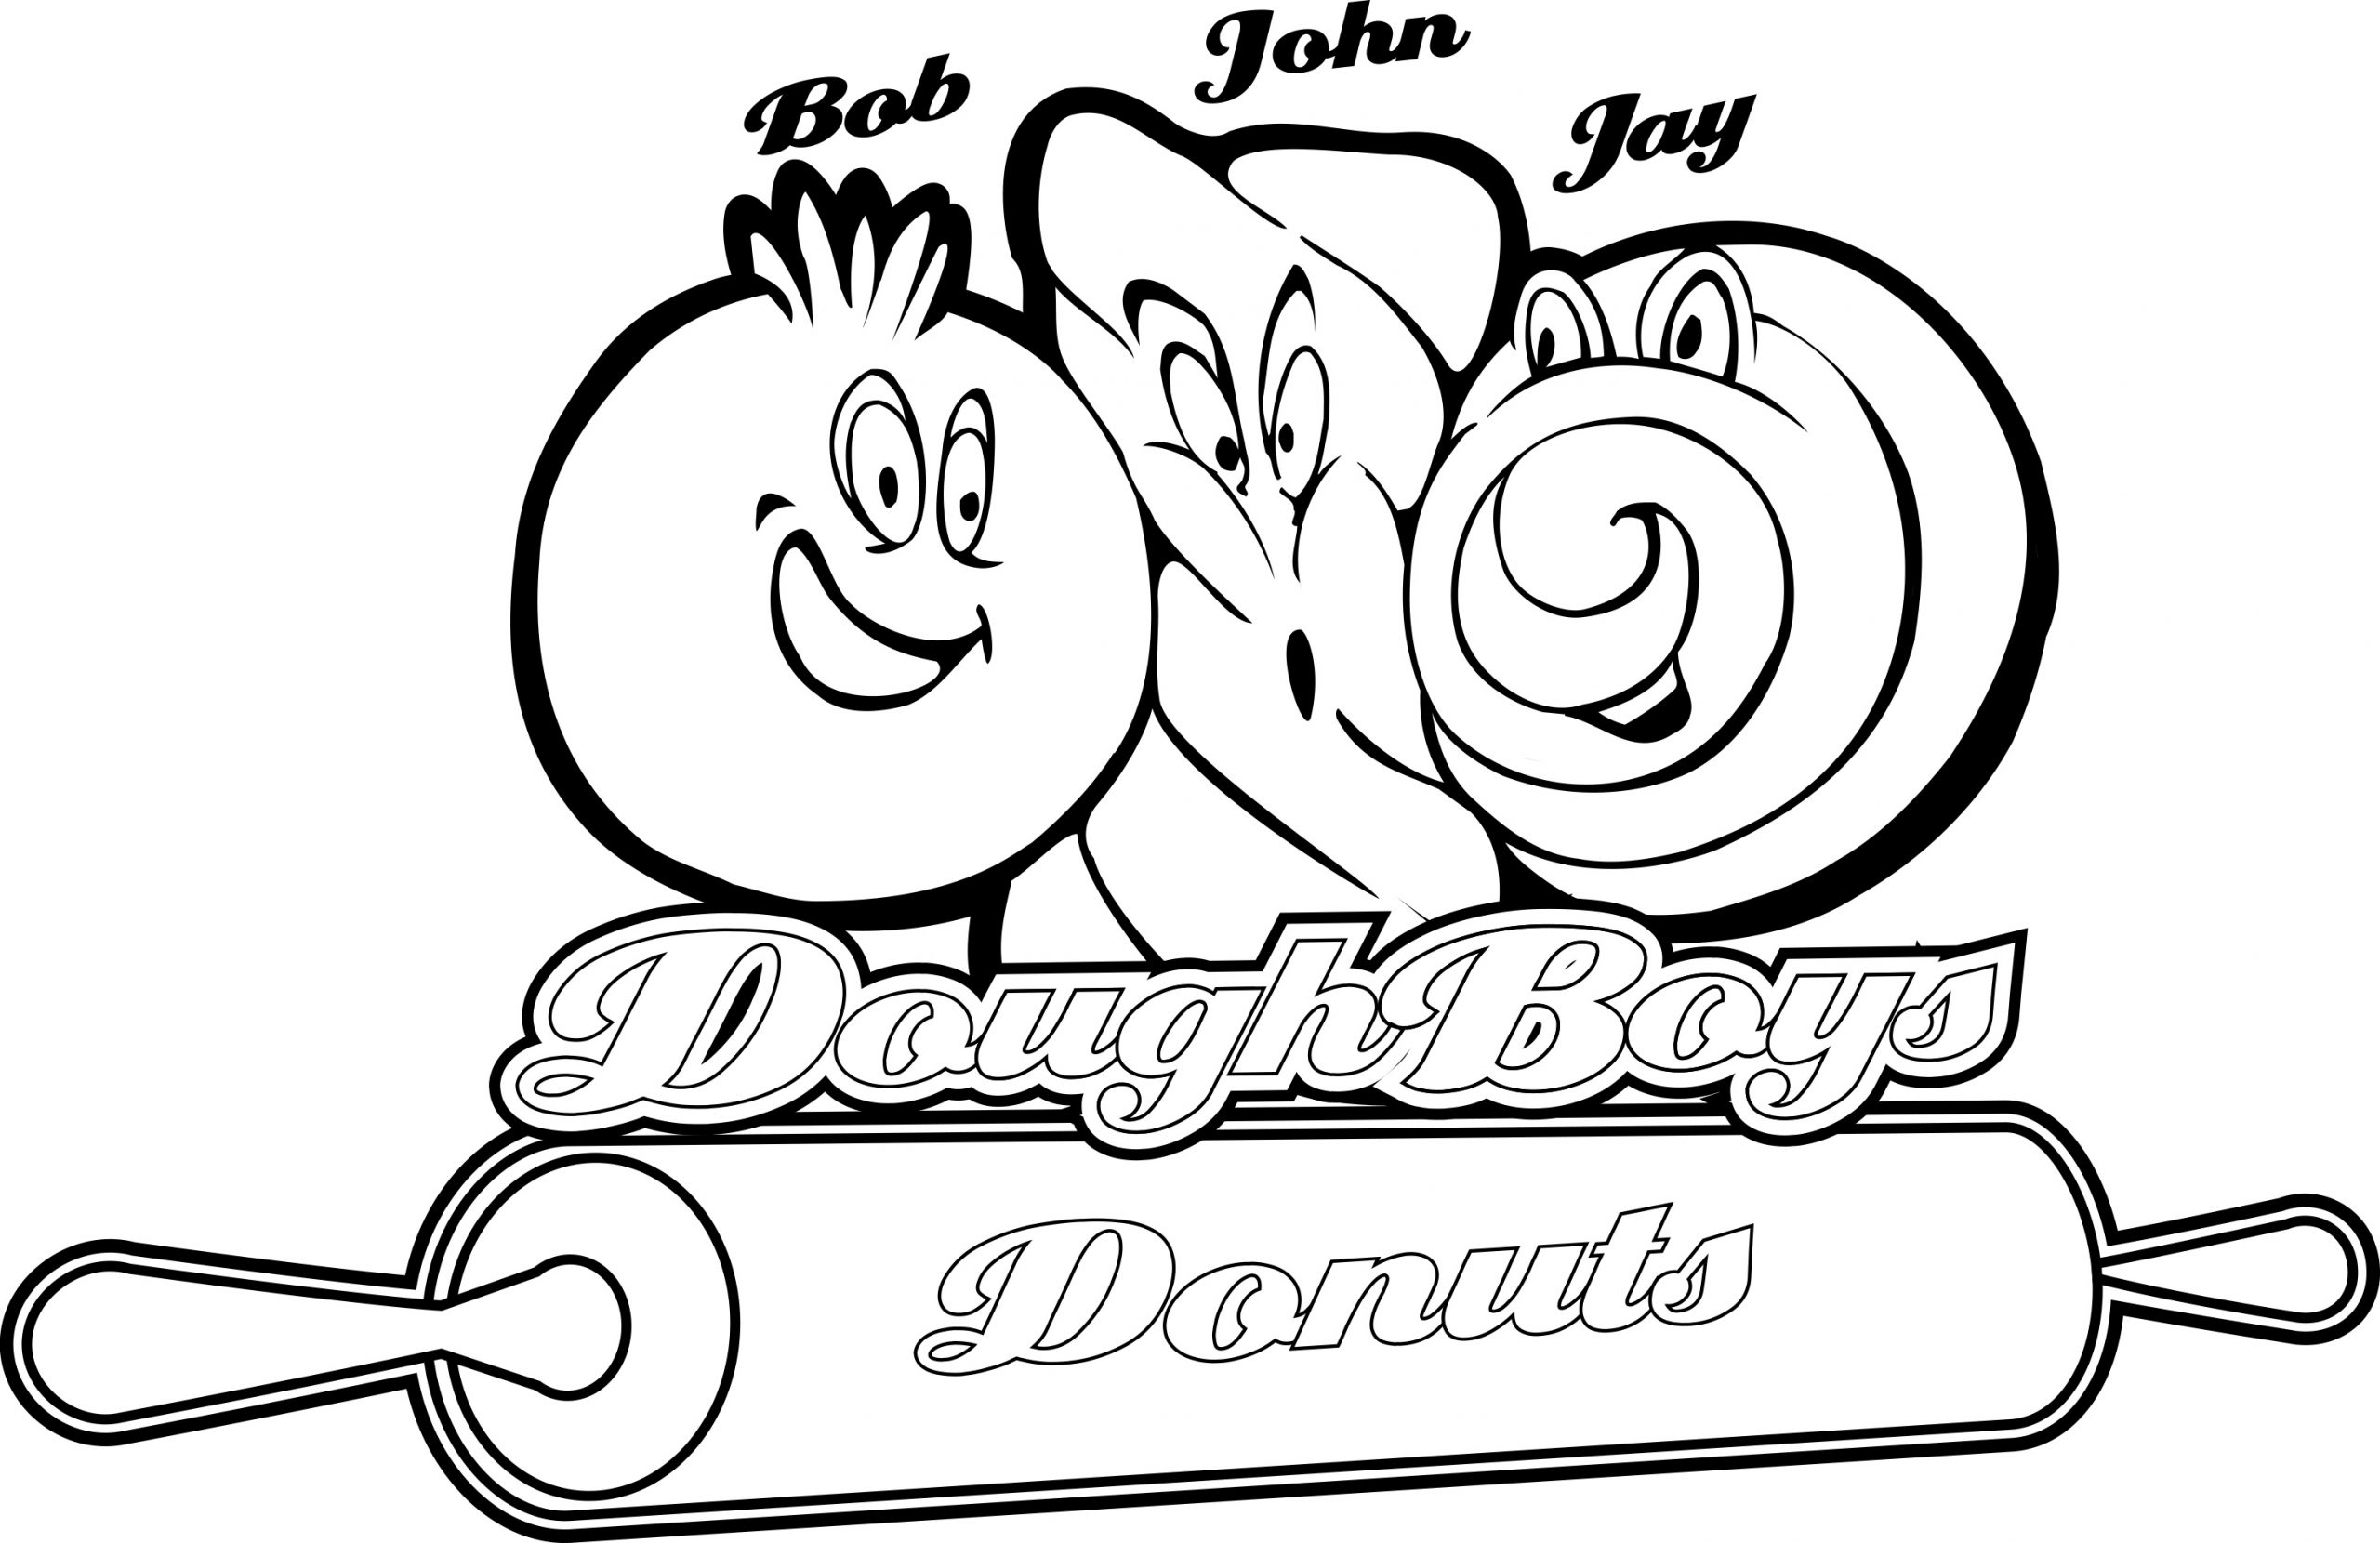 DoughBoys Donuts Coloring page